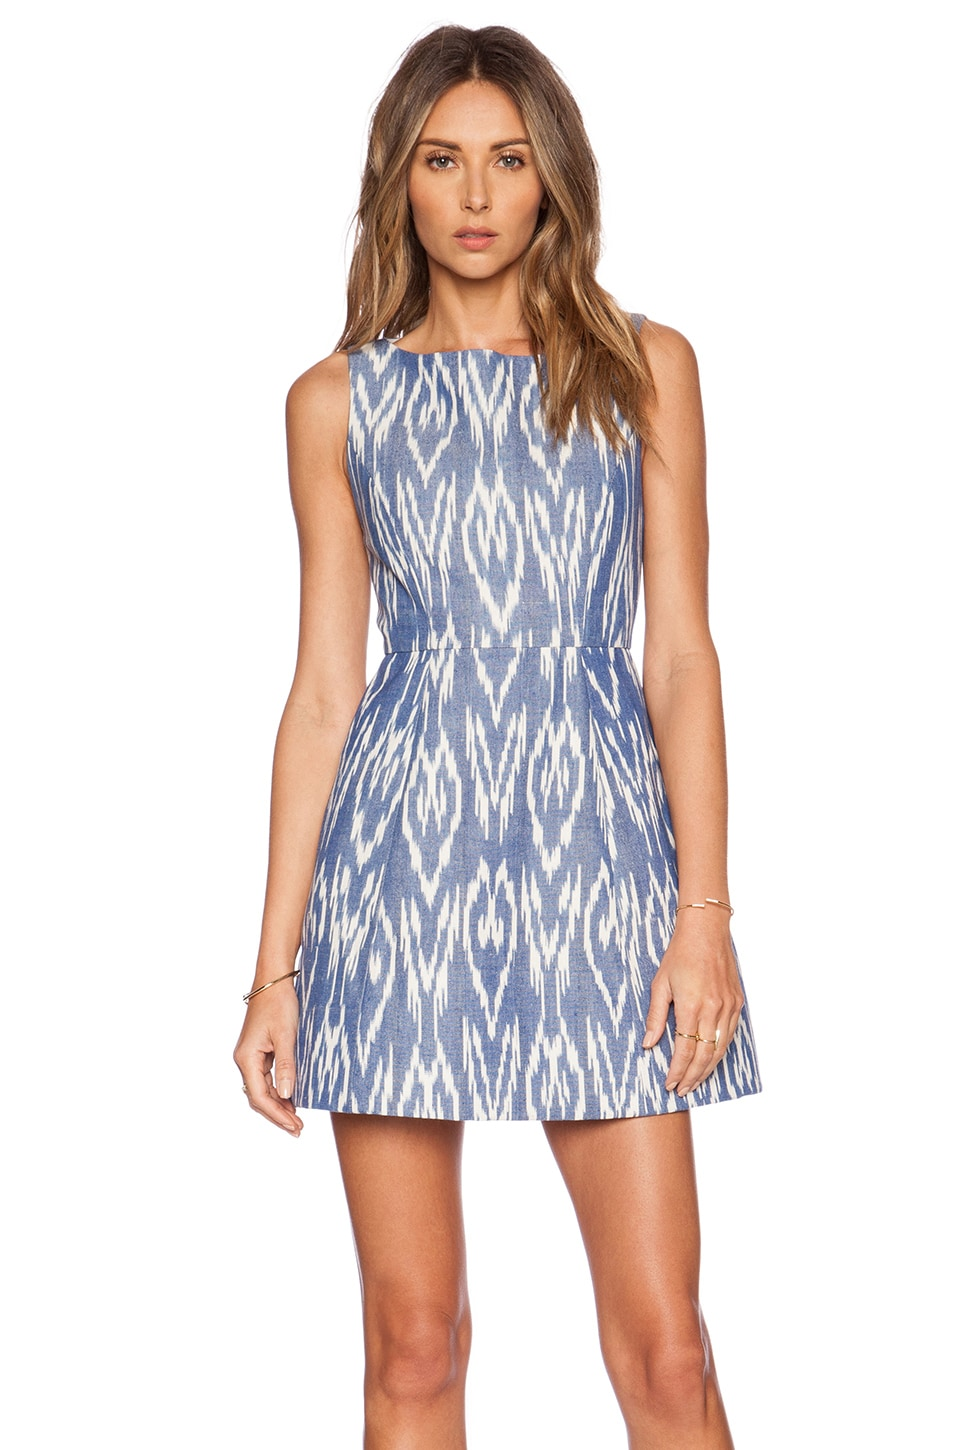 Alice + Olivia Epstein Structured Dress in Blue & White